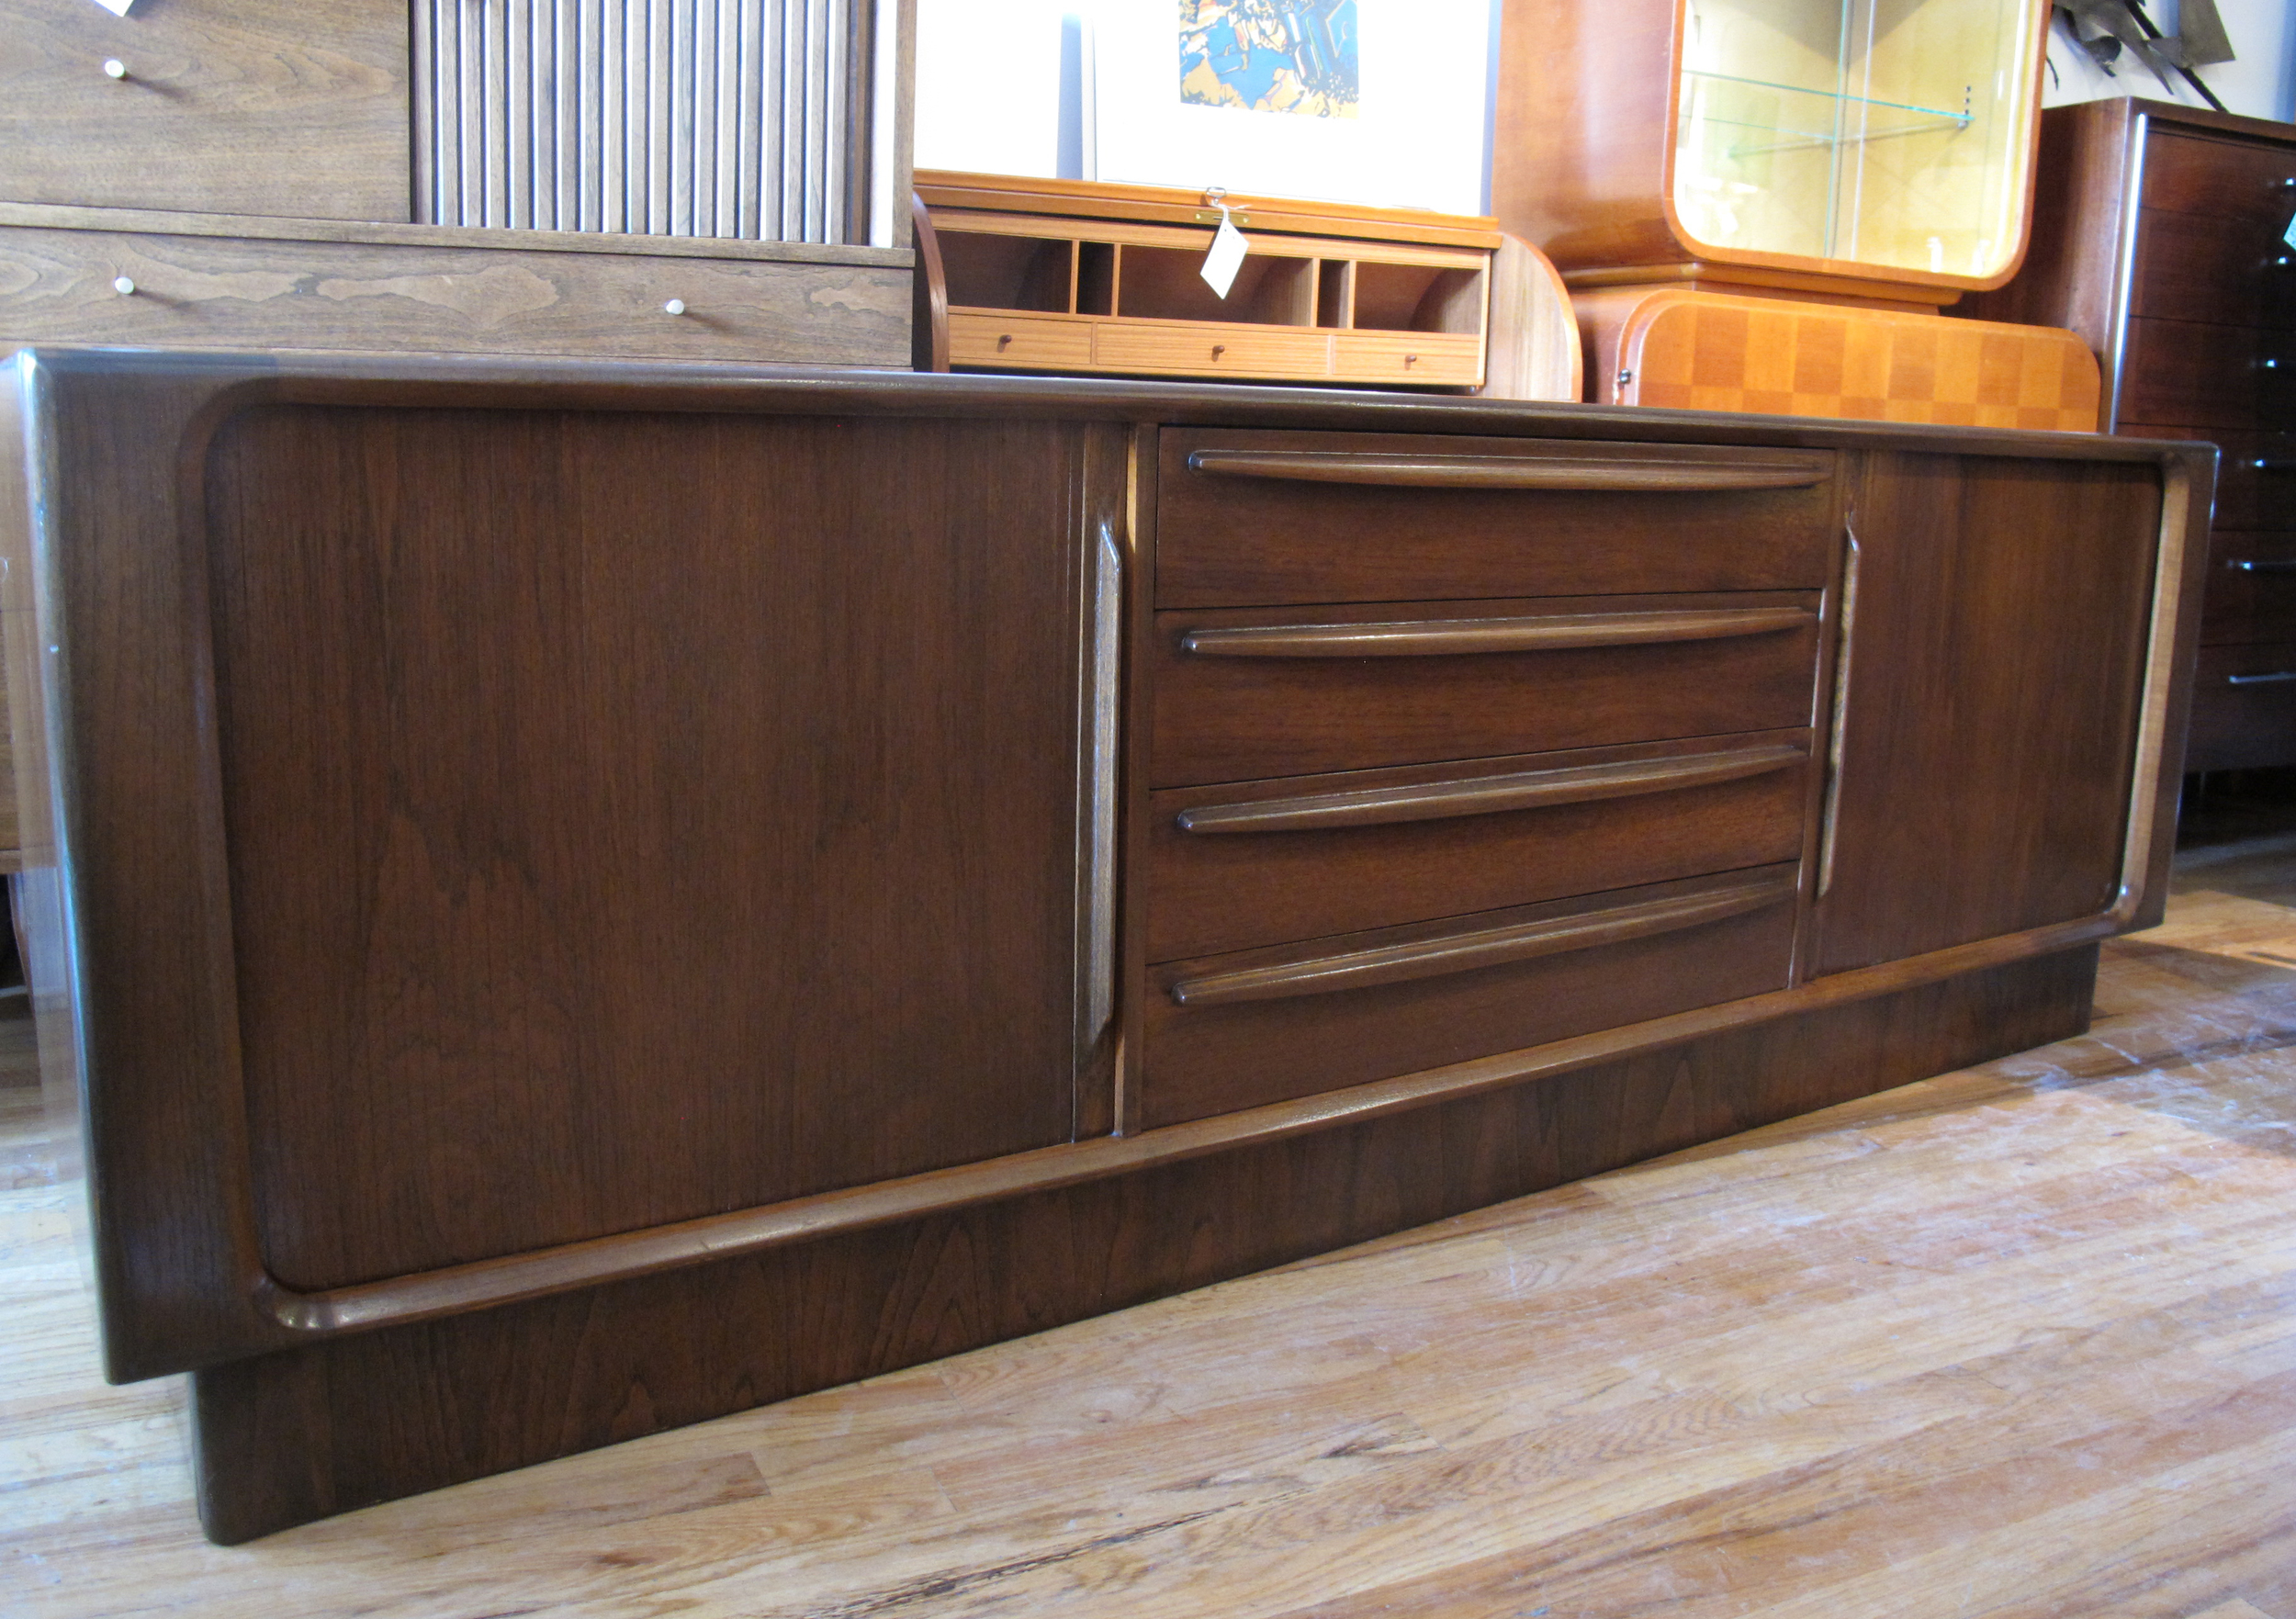 DANISH BERNHARD PEDERSEN AND SON DARK TEAK CREDENZA FOR MAURICE VILLENCY